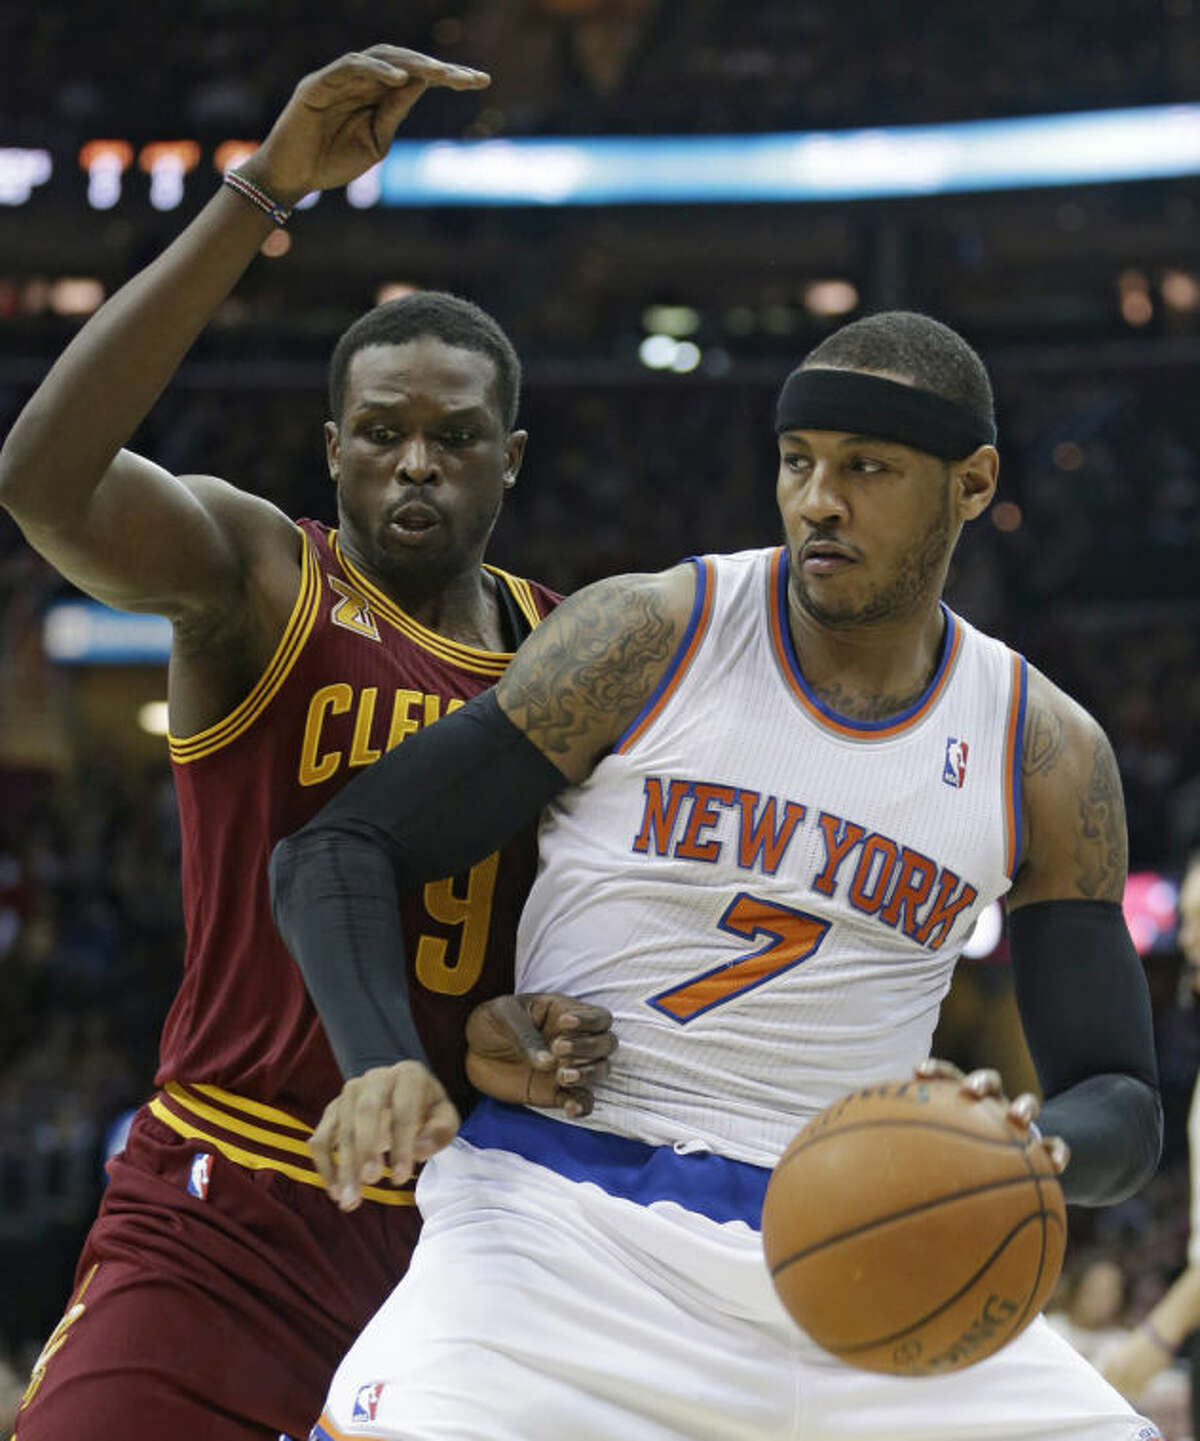 New York Knicks' Carmelo Anthony (7) drives past Cleveland Cavaliers' Luol Deng, (9) during the first quarter of an NBA basketball game Saturday, March 8, 2014, in Cleveland. (AP Photo/Tony Dejak)